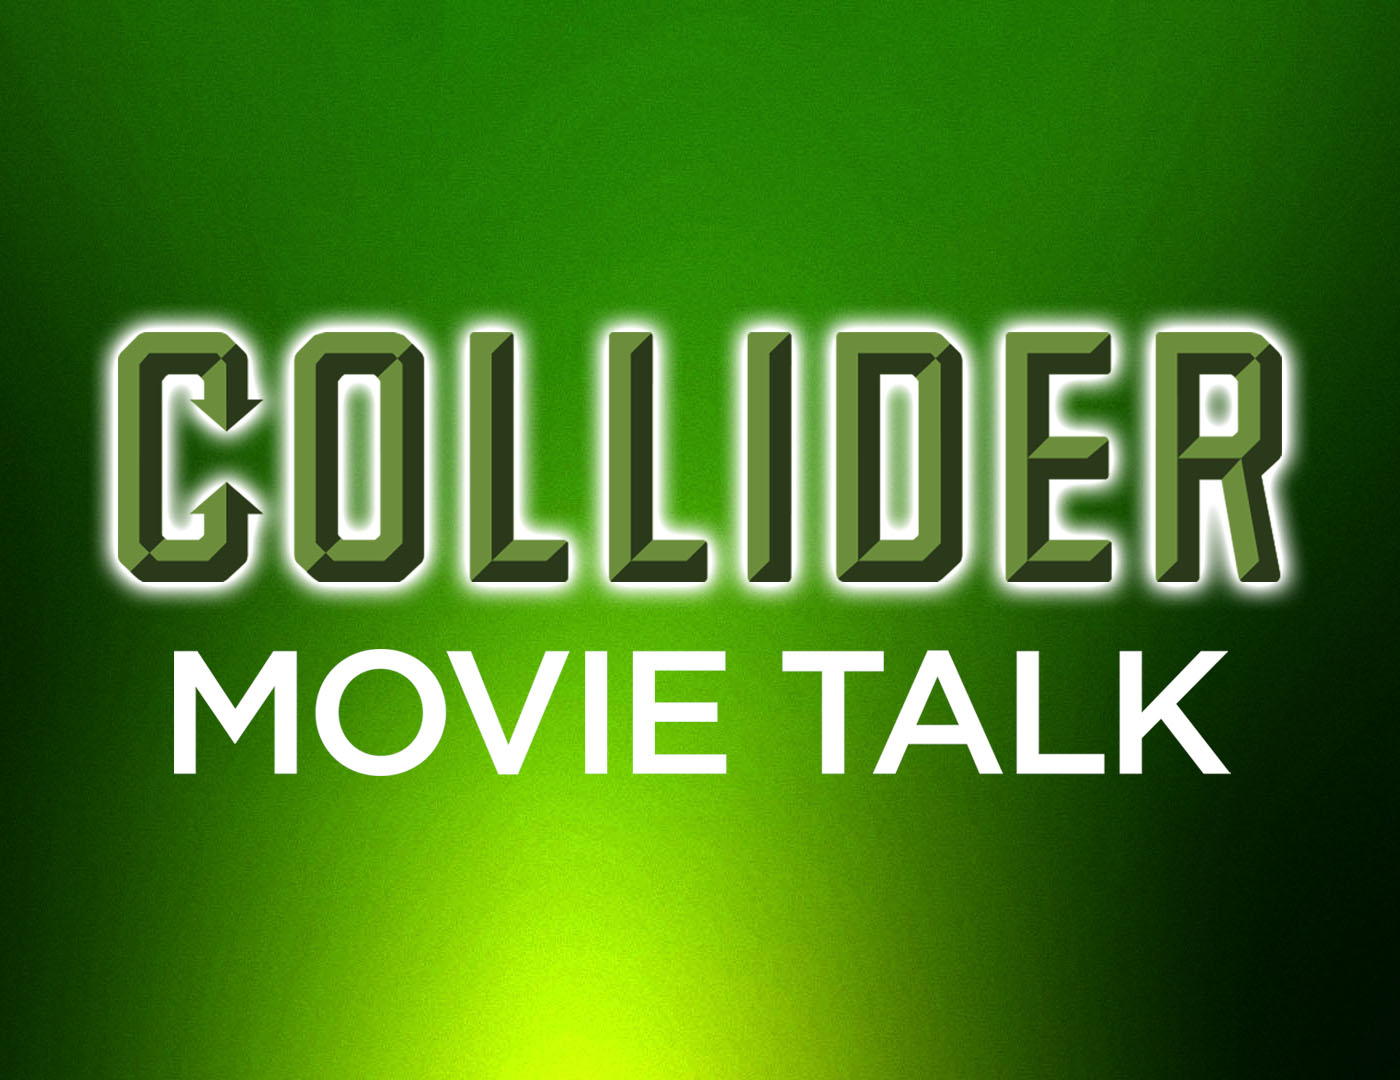 How Big A Role Will Commissioner Gordon Play In Justice League? - Collider Movie Talk